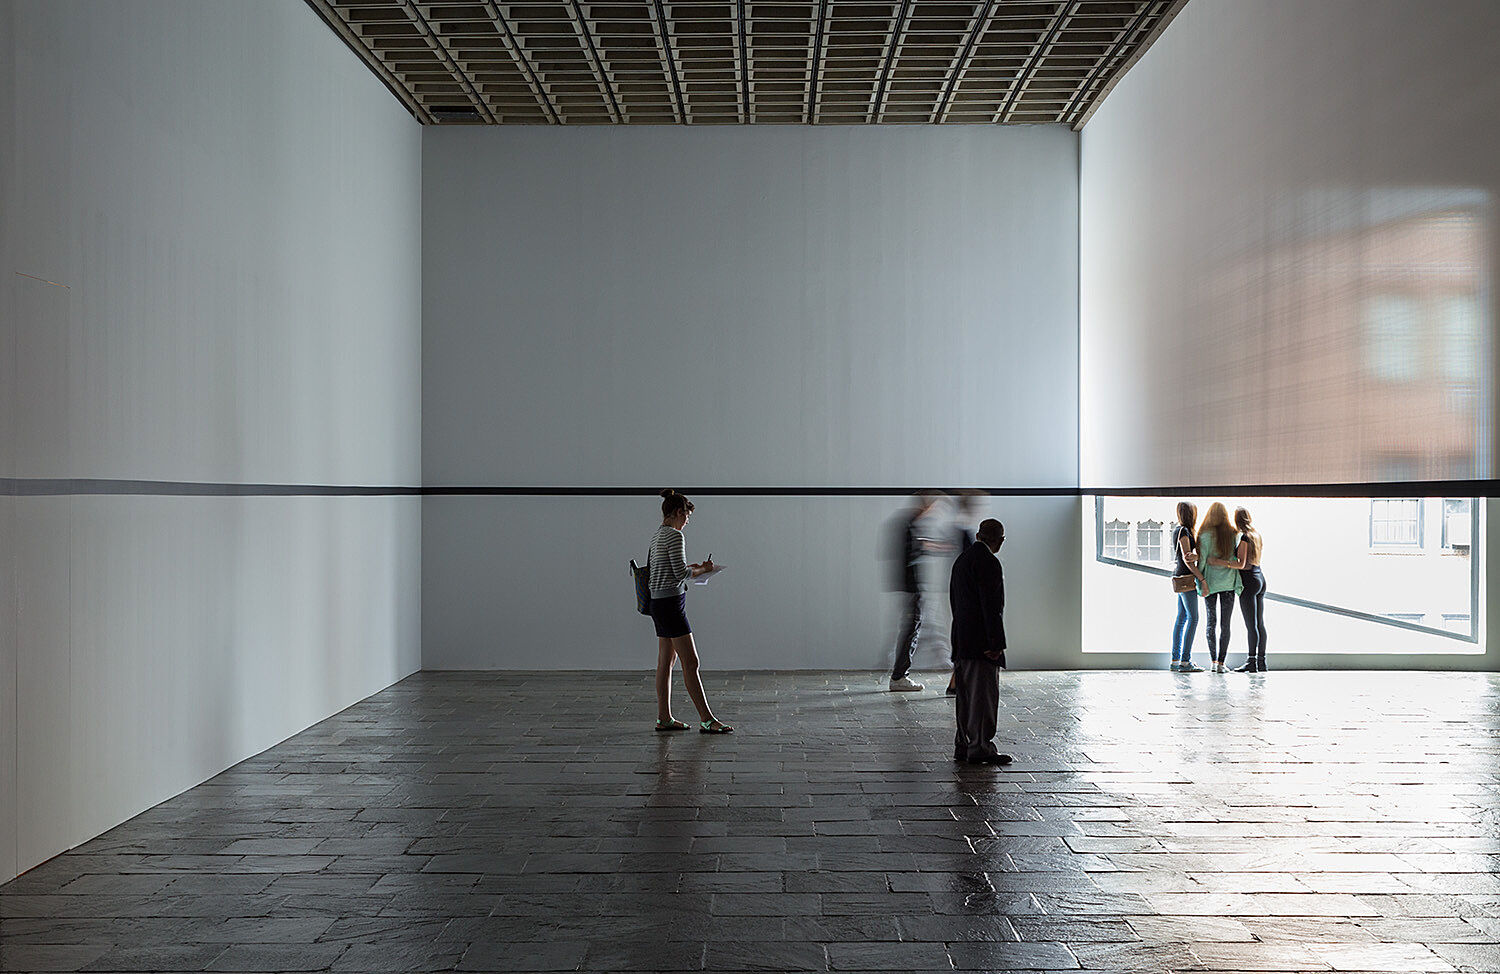 People standing in a gallery and three people looking out a window.